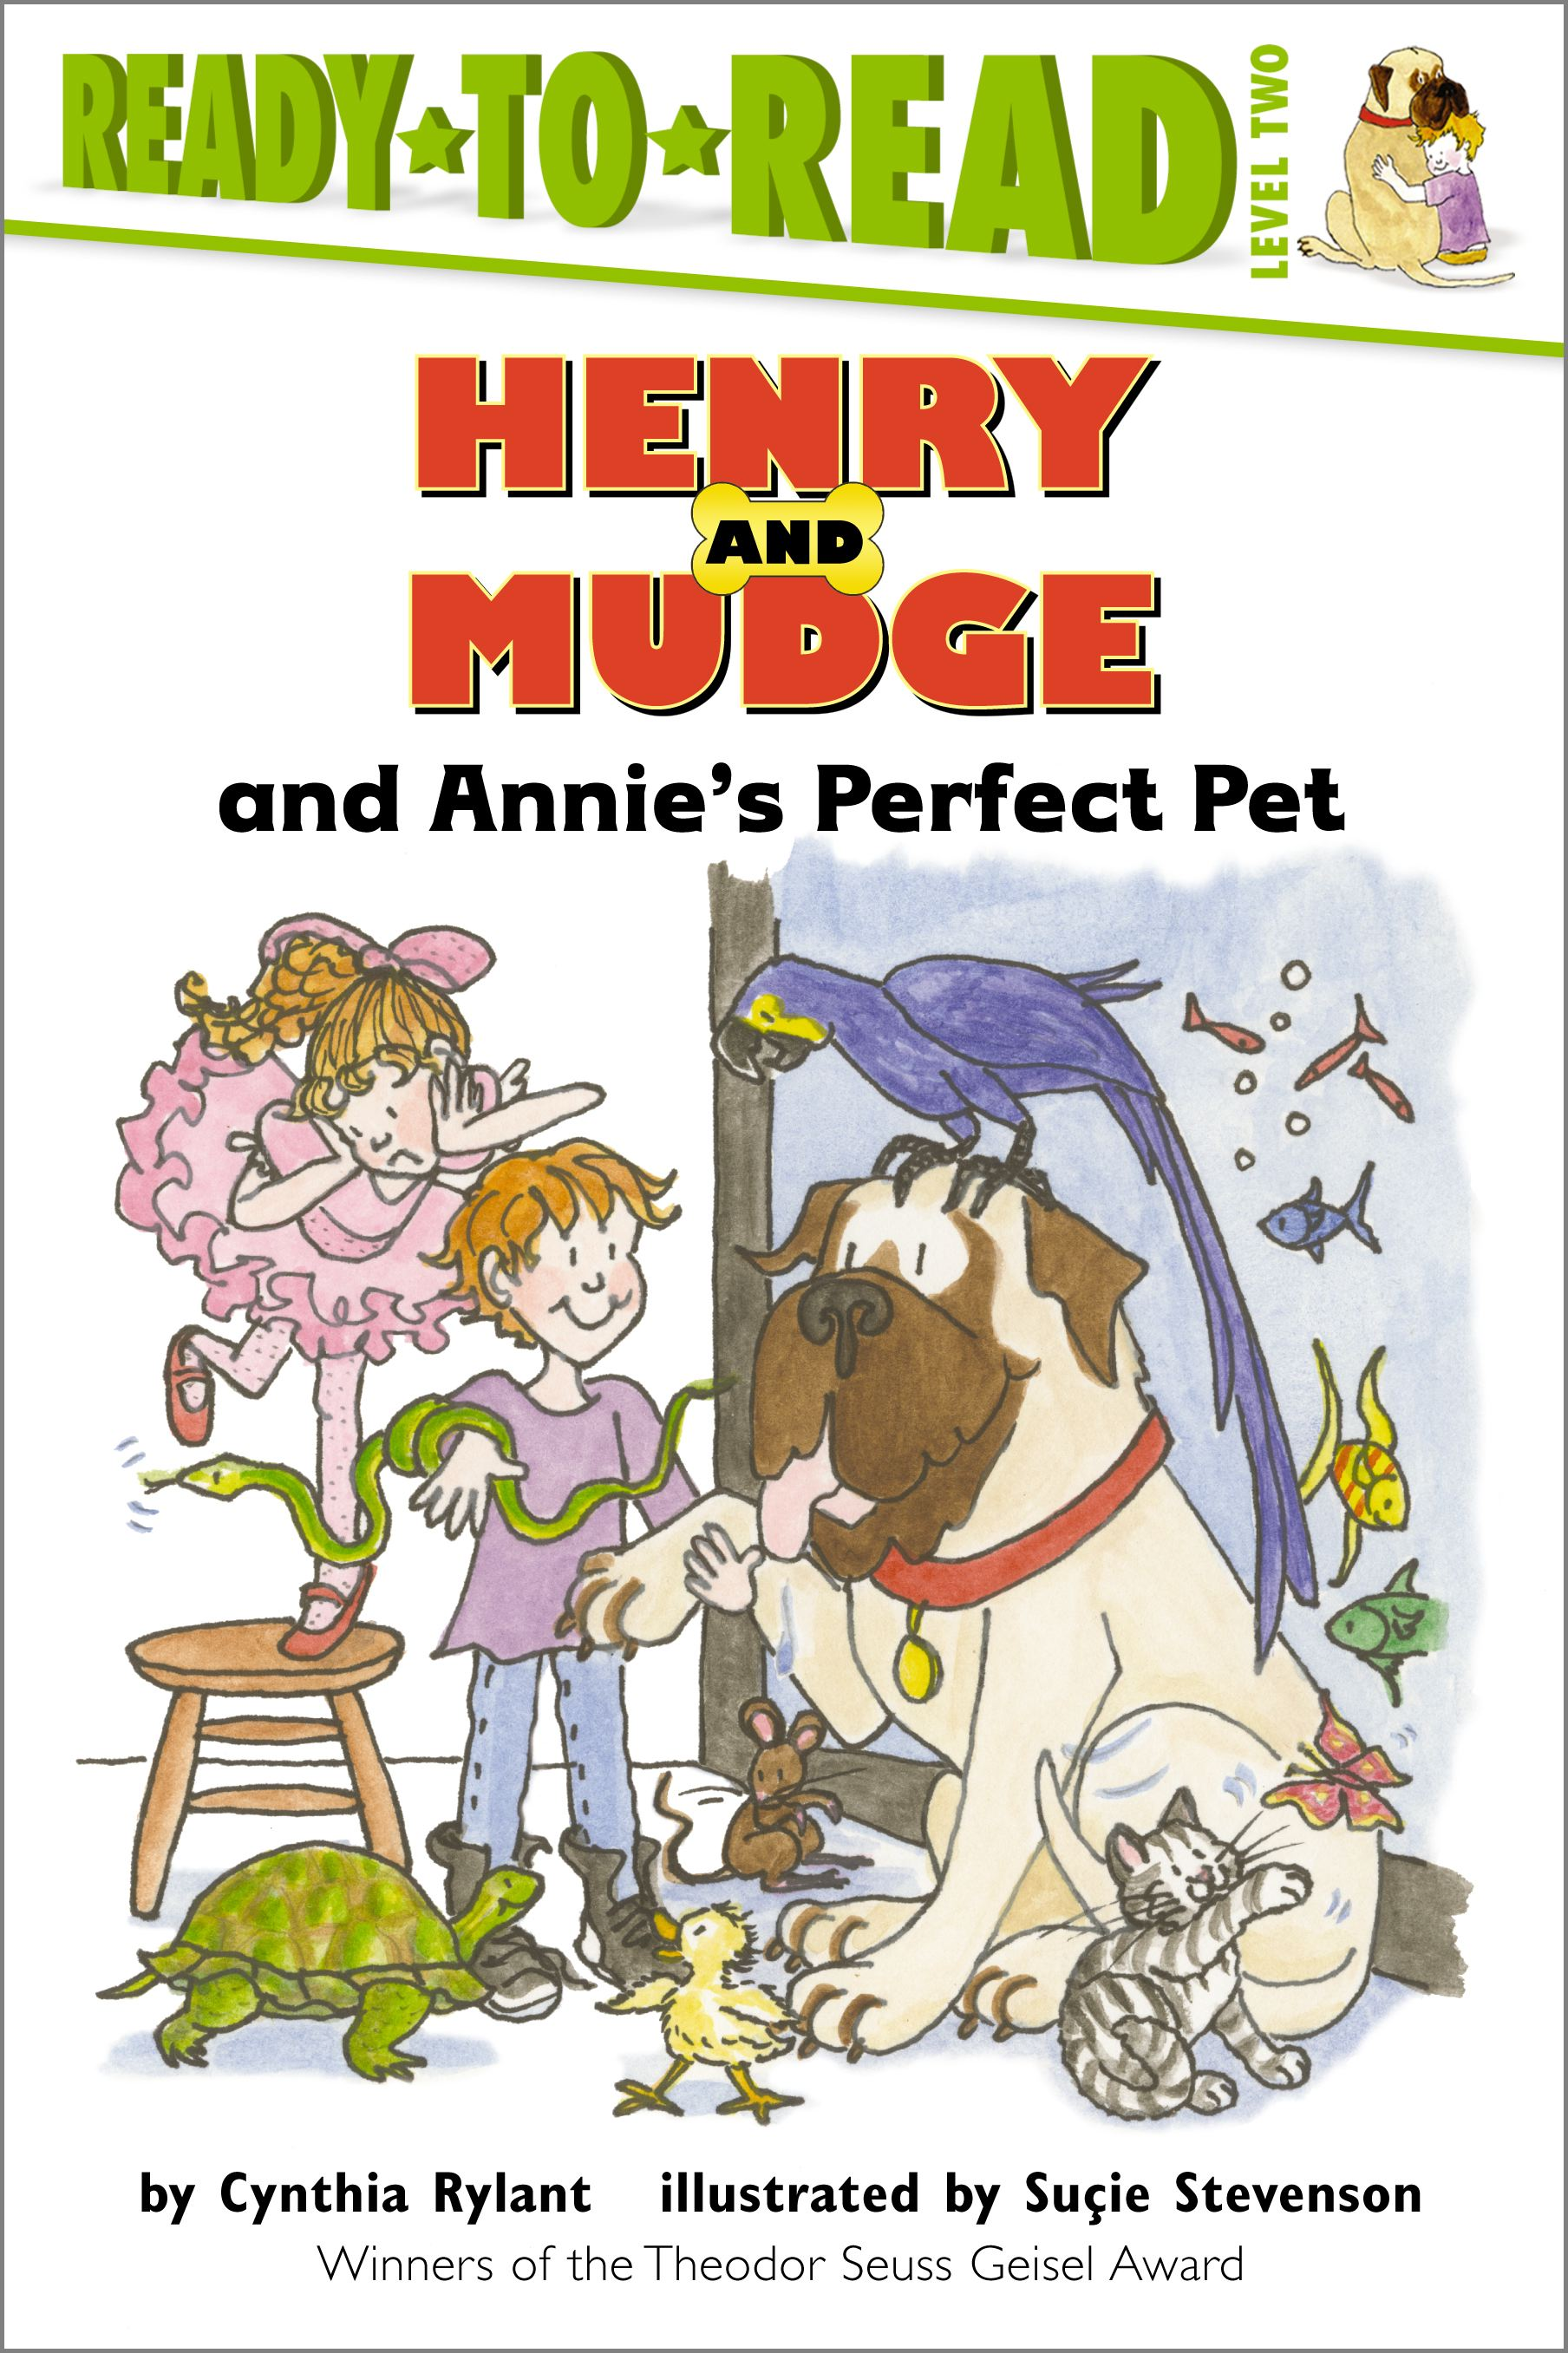 Book Cover Image (jpg): Henry and Mudge and Annie's Perfect Pet